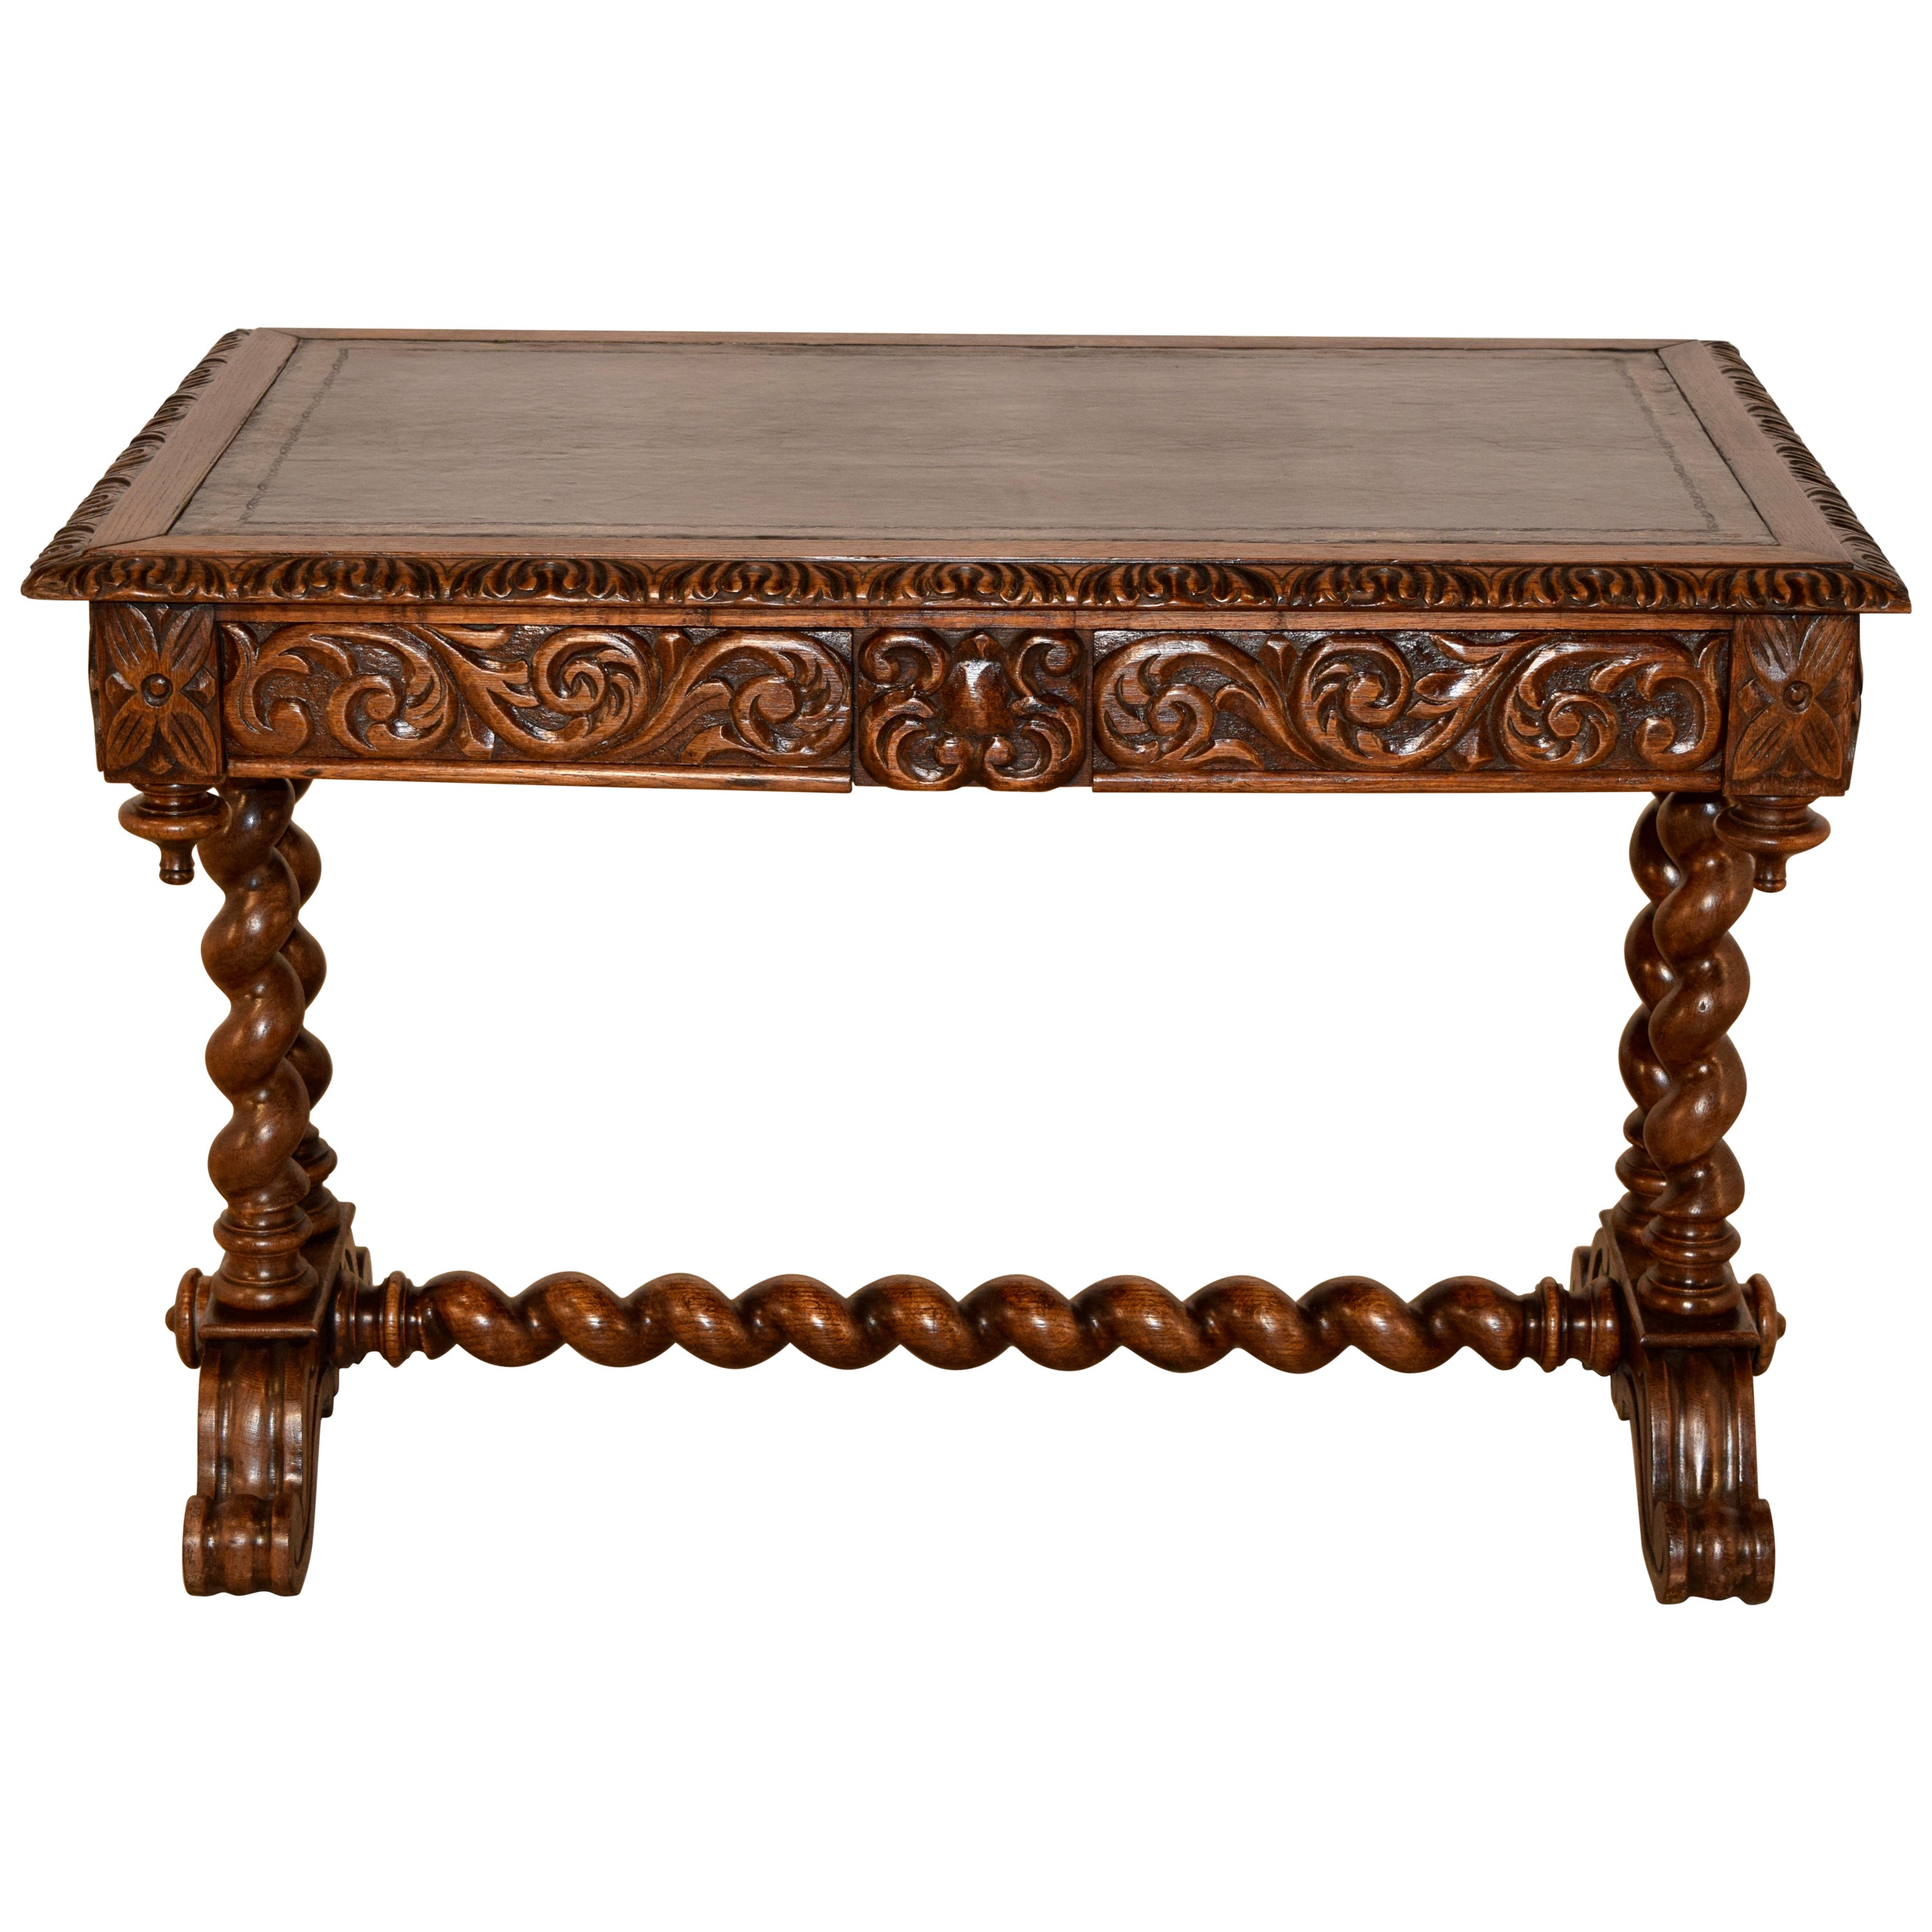 19th Century Carved Desk with Leather Top